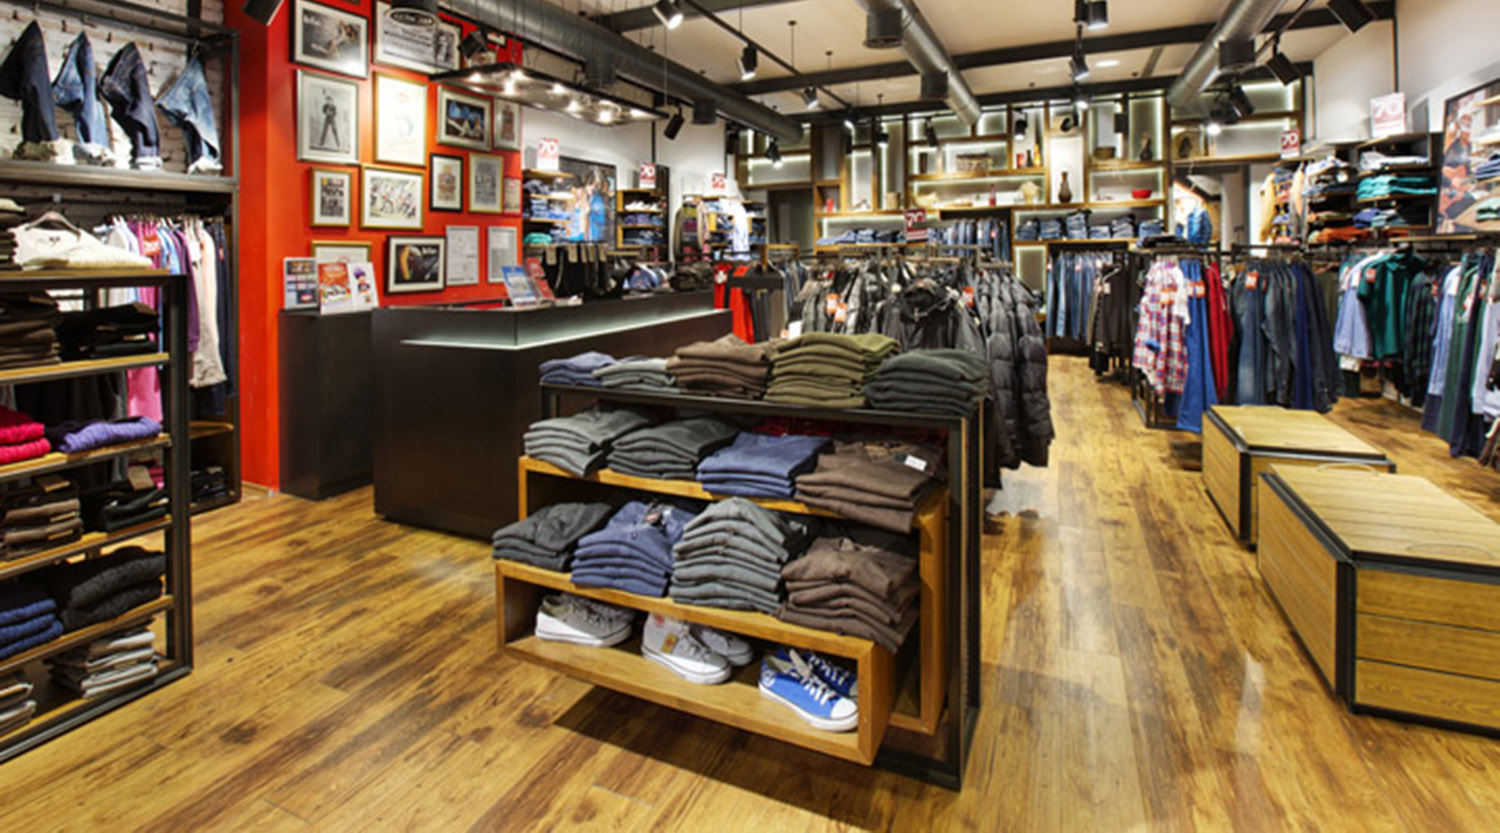 Small Names Clothing Stores Suppliers Showroom Furniture